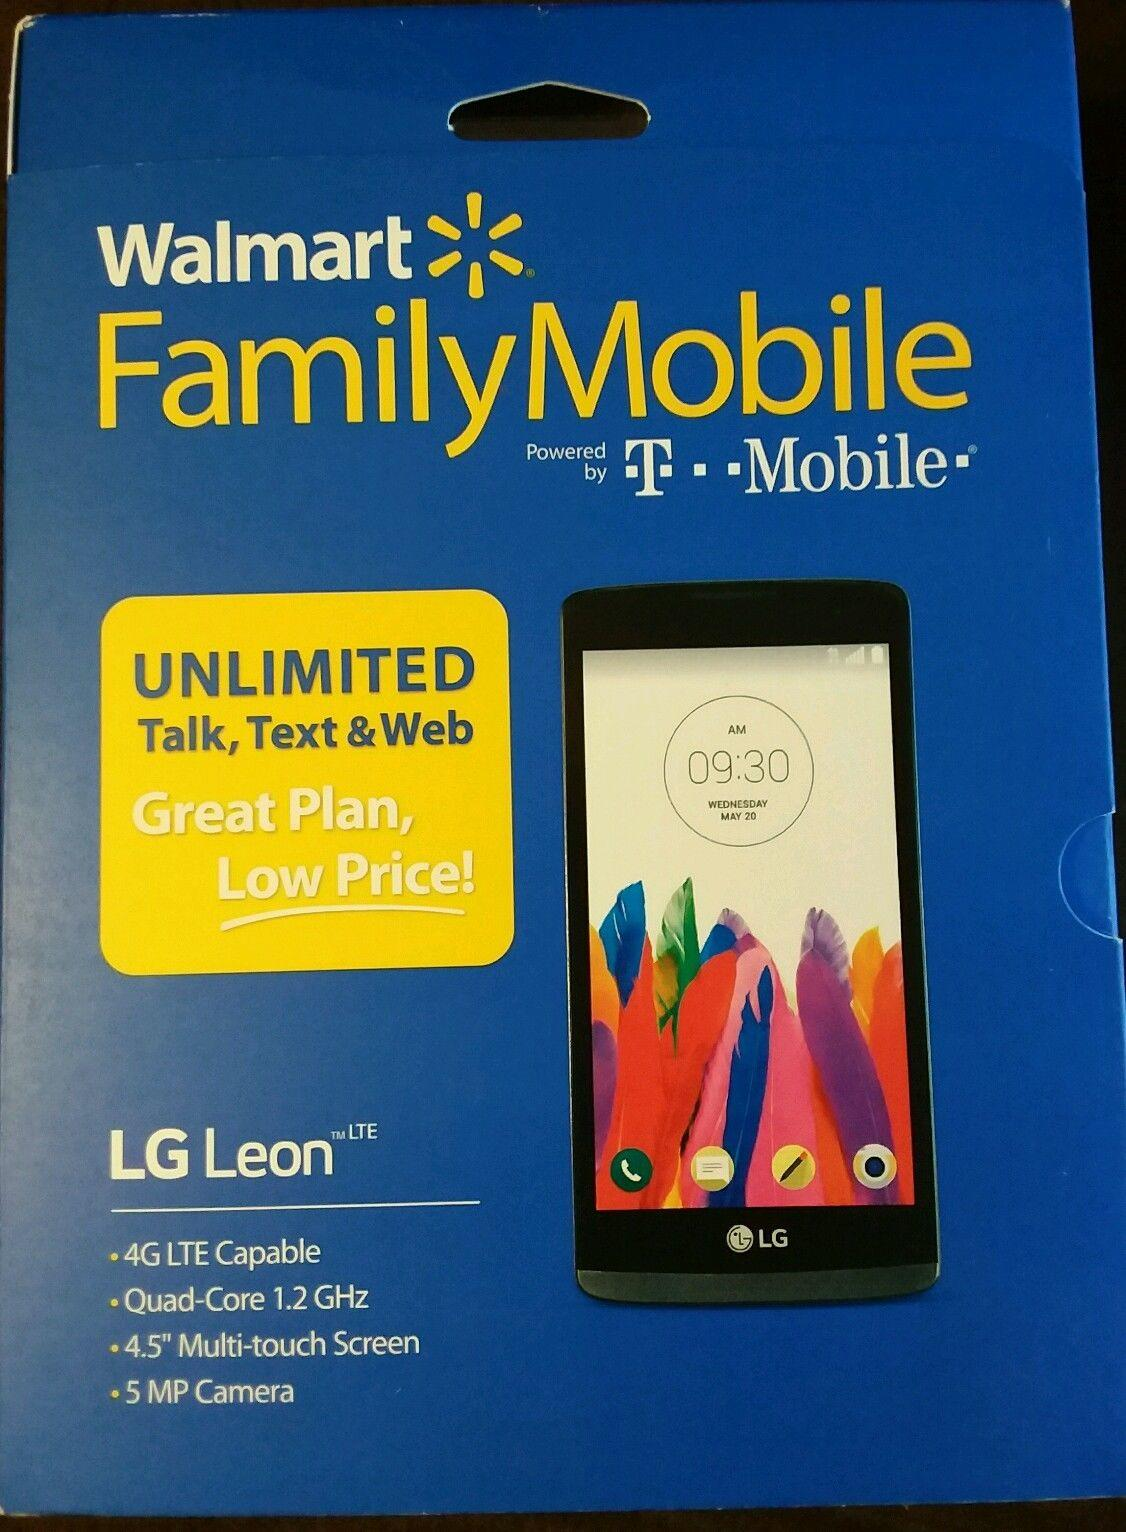 NEW - Walmart Family Mobile Powered by T-Mobile LG Leon 4 5